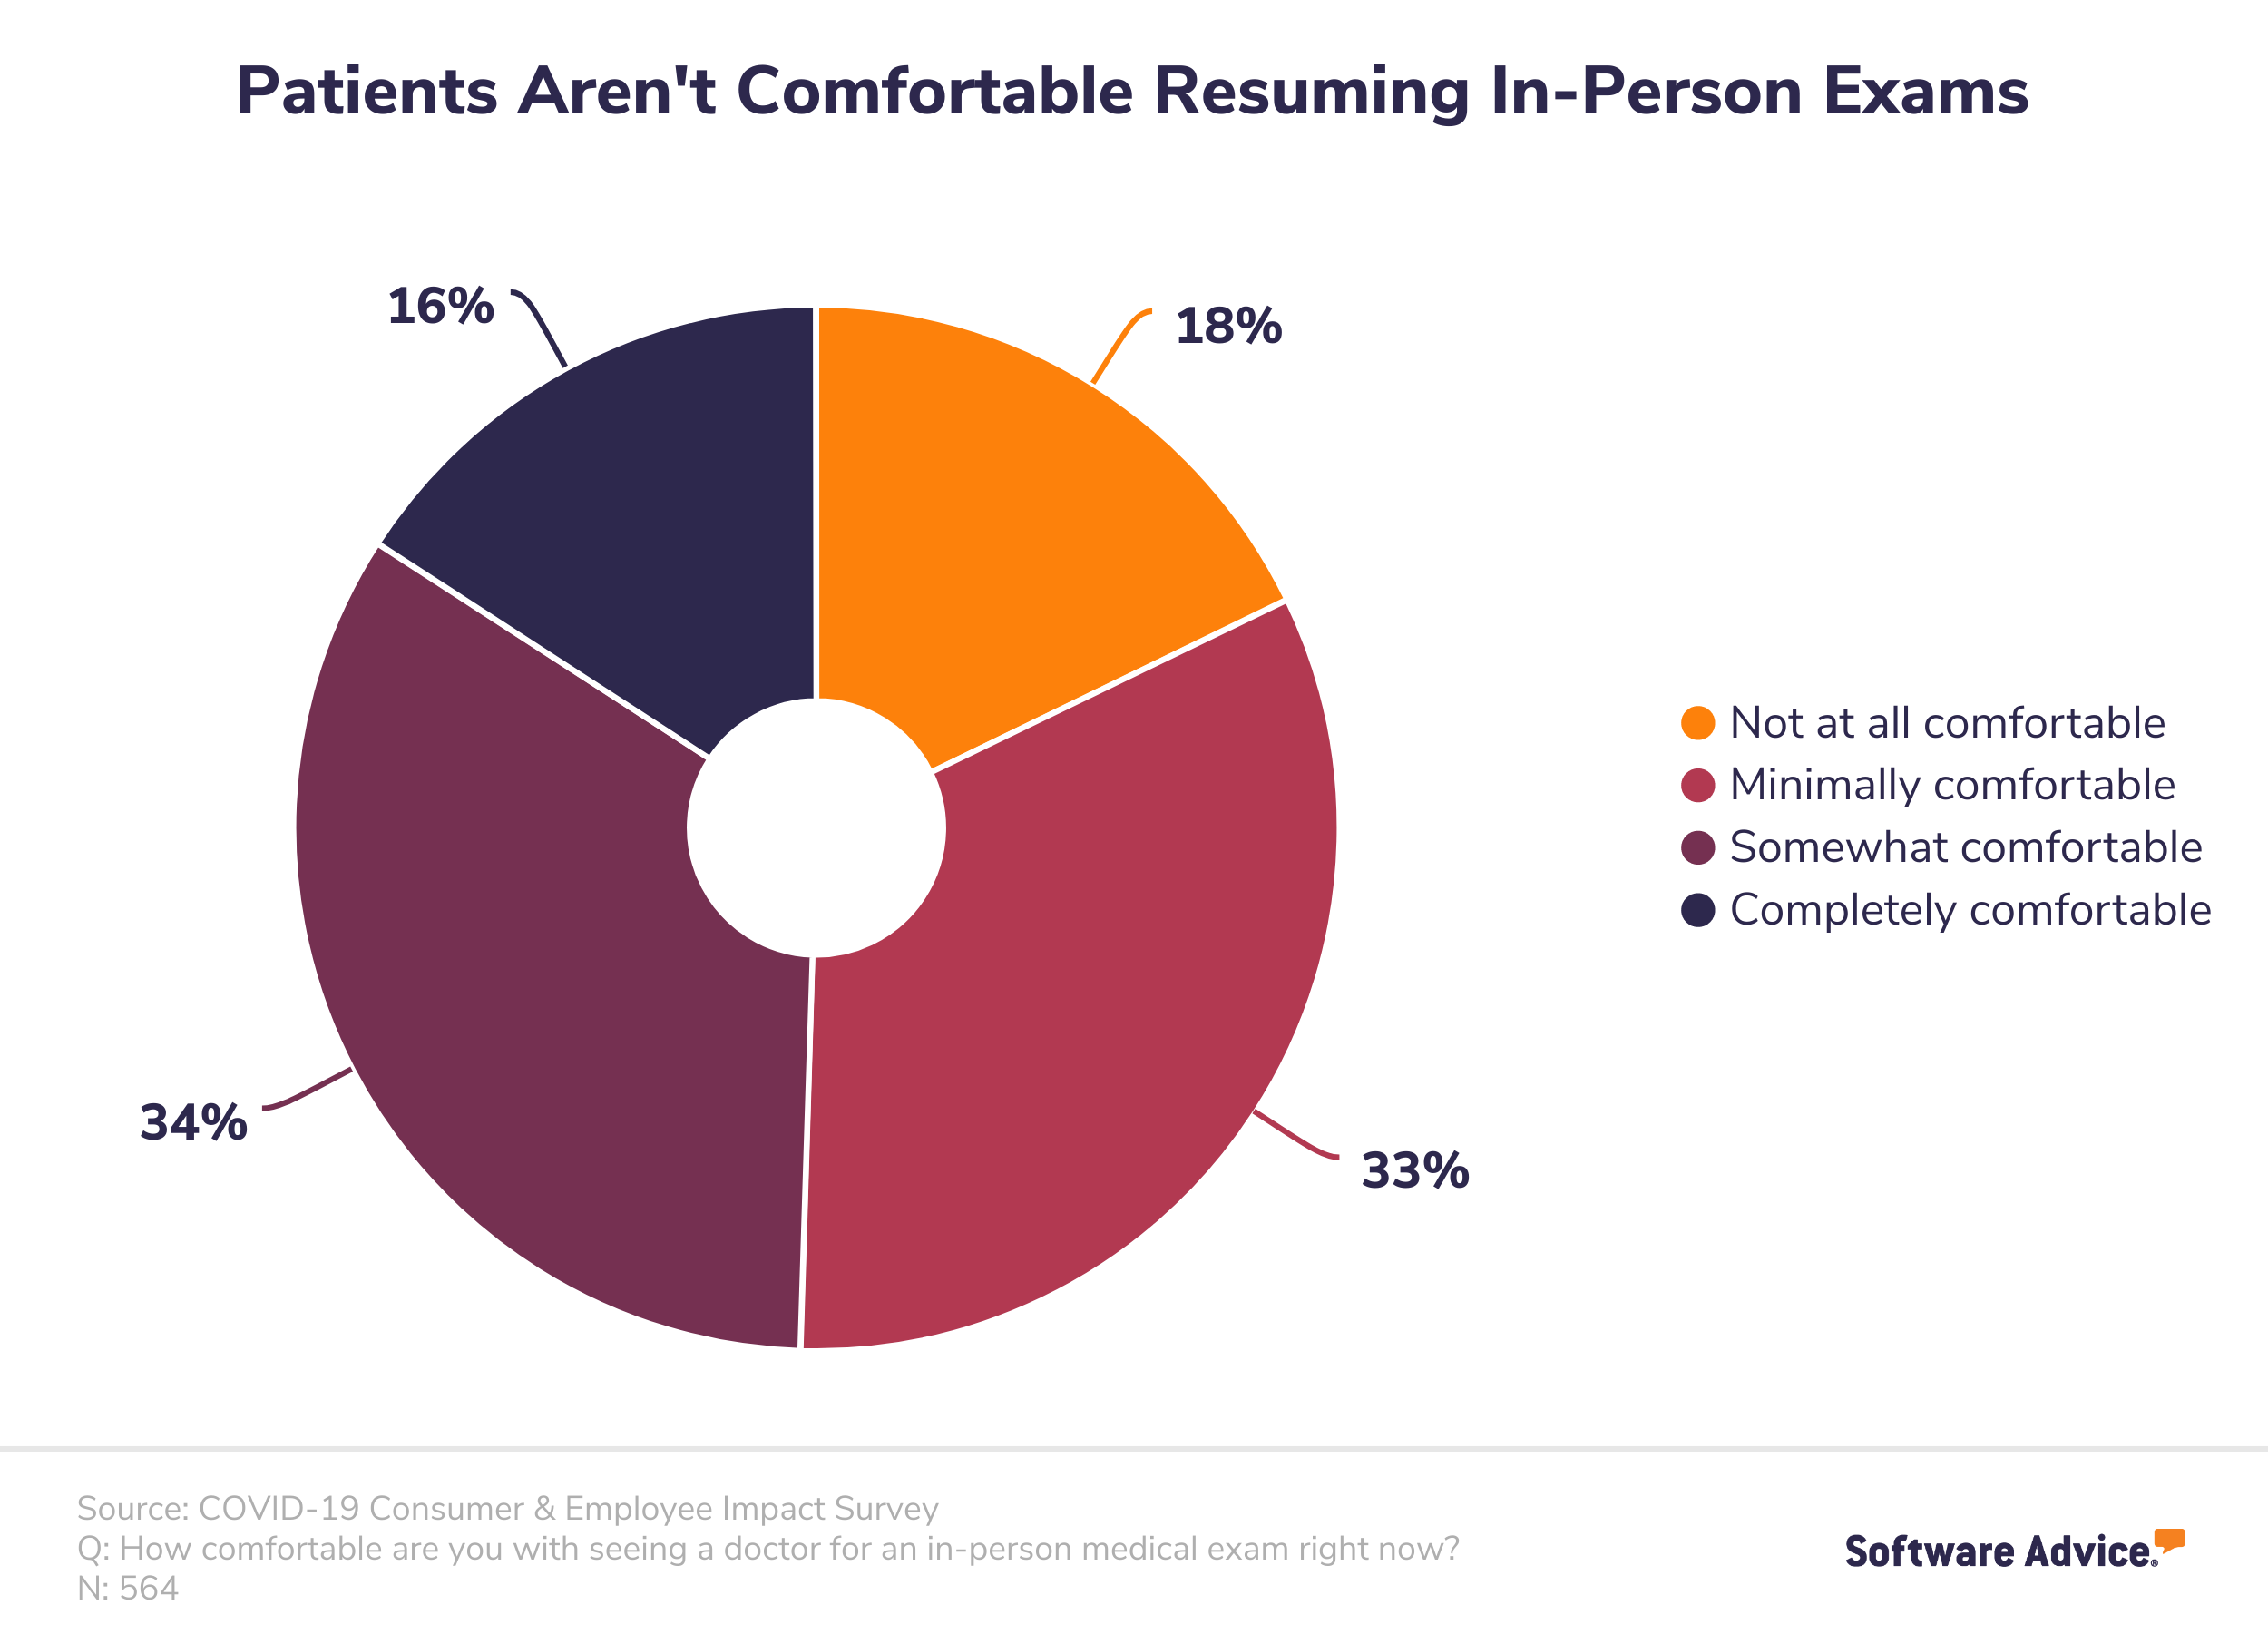 Patients are not yet comfortable resuming in-person medical office visits